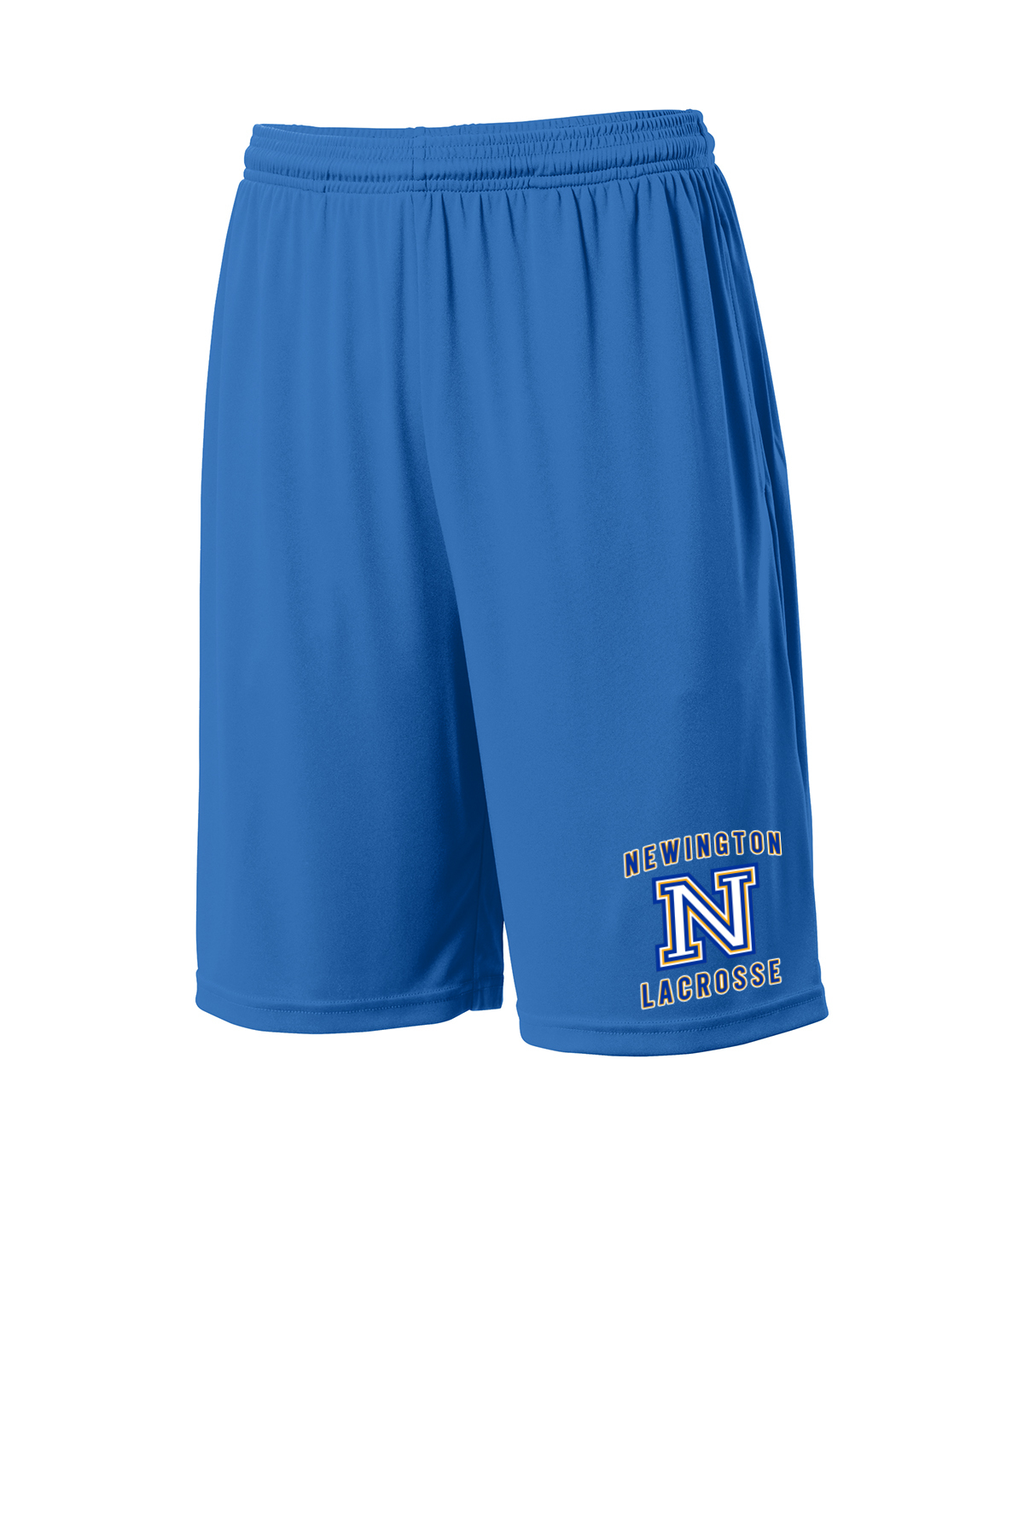 Newington Lacrosse Shorts